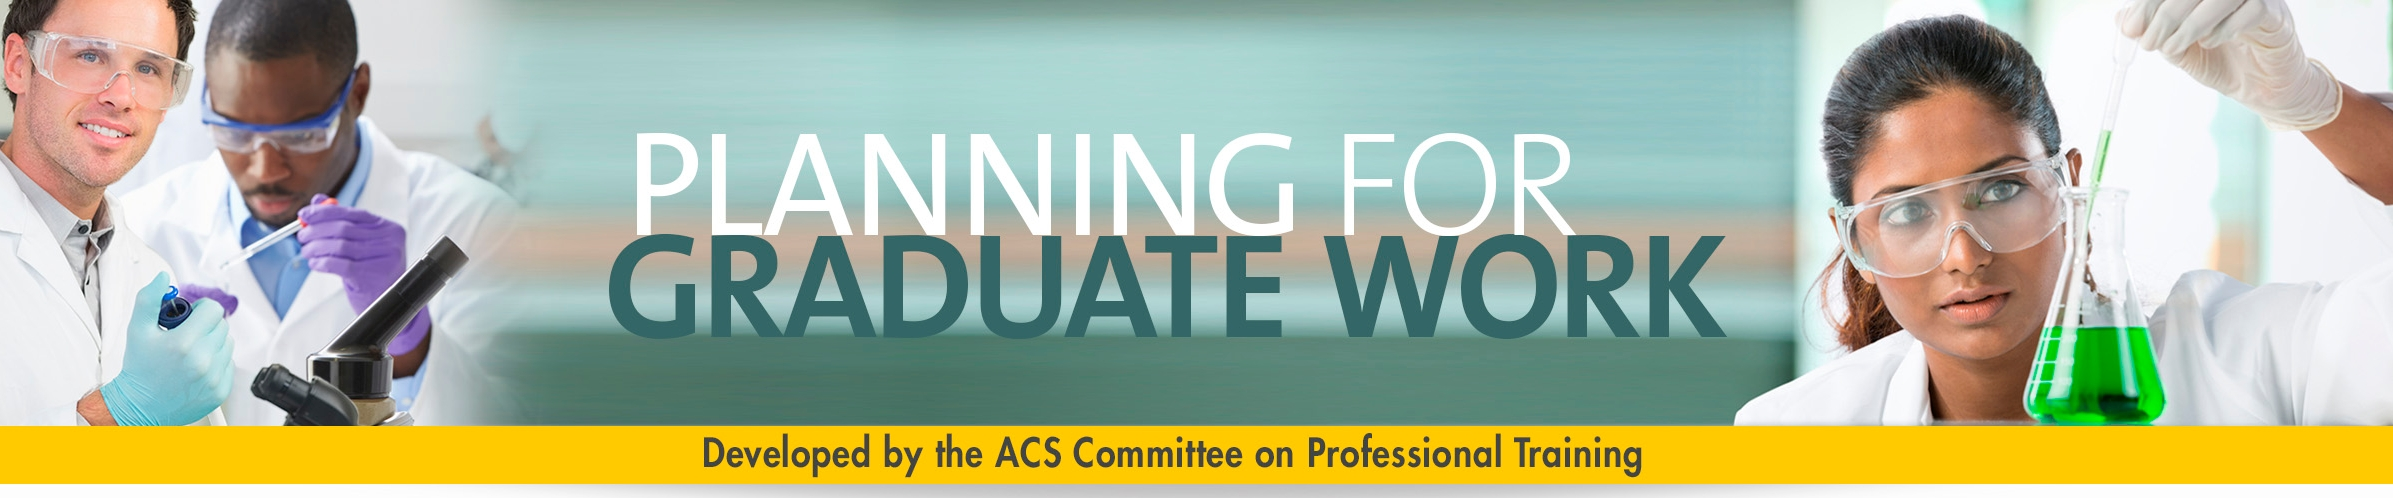 ACS Placement Exams - any experience? - Chemistry - The ...